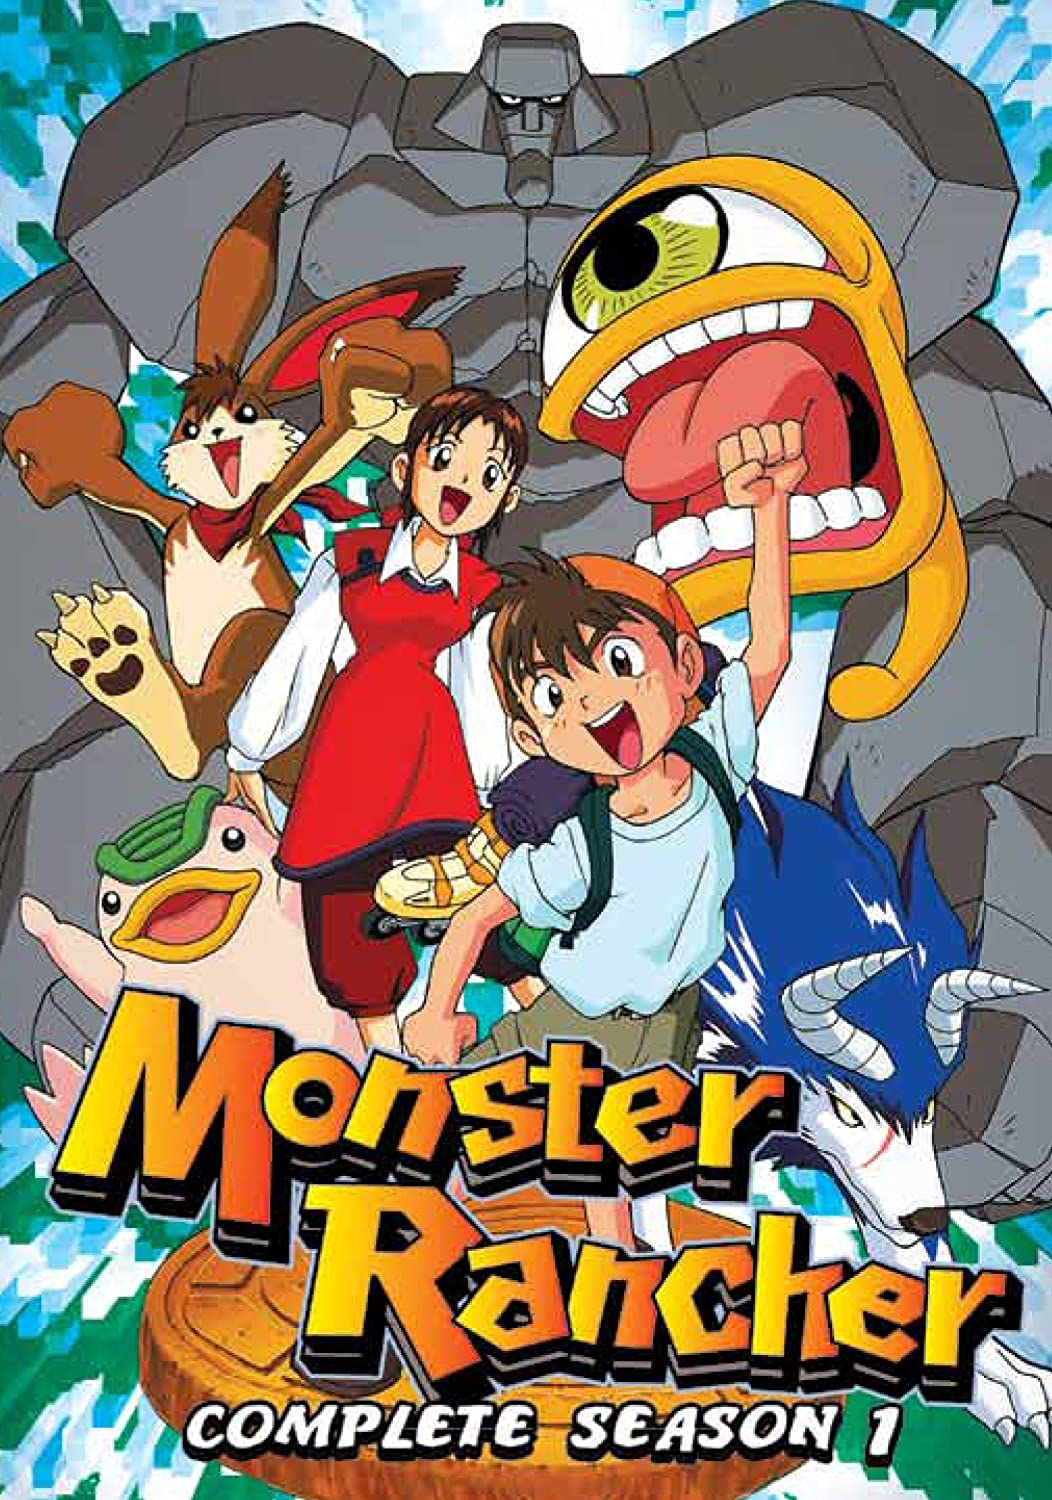 Monster rancher pron smut tube